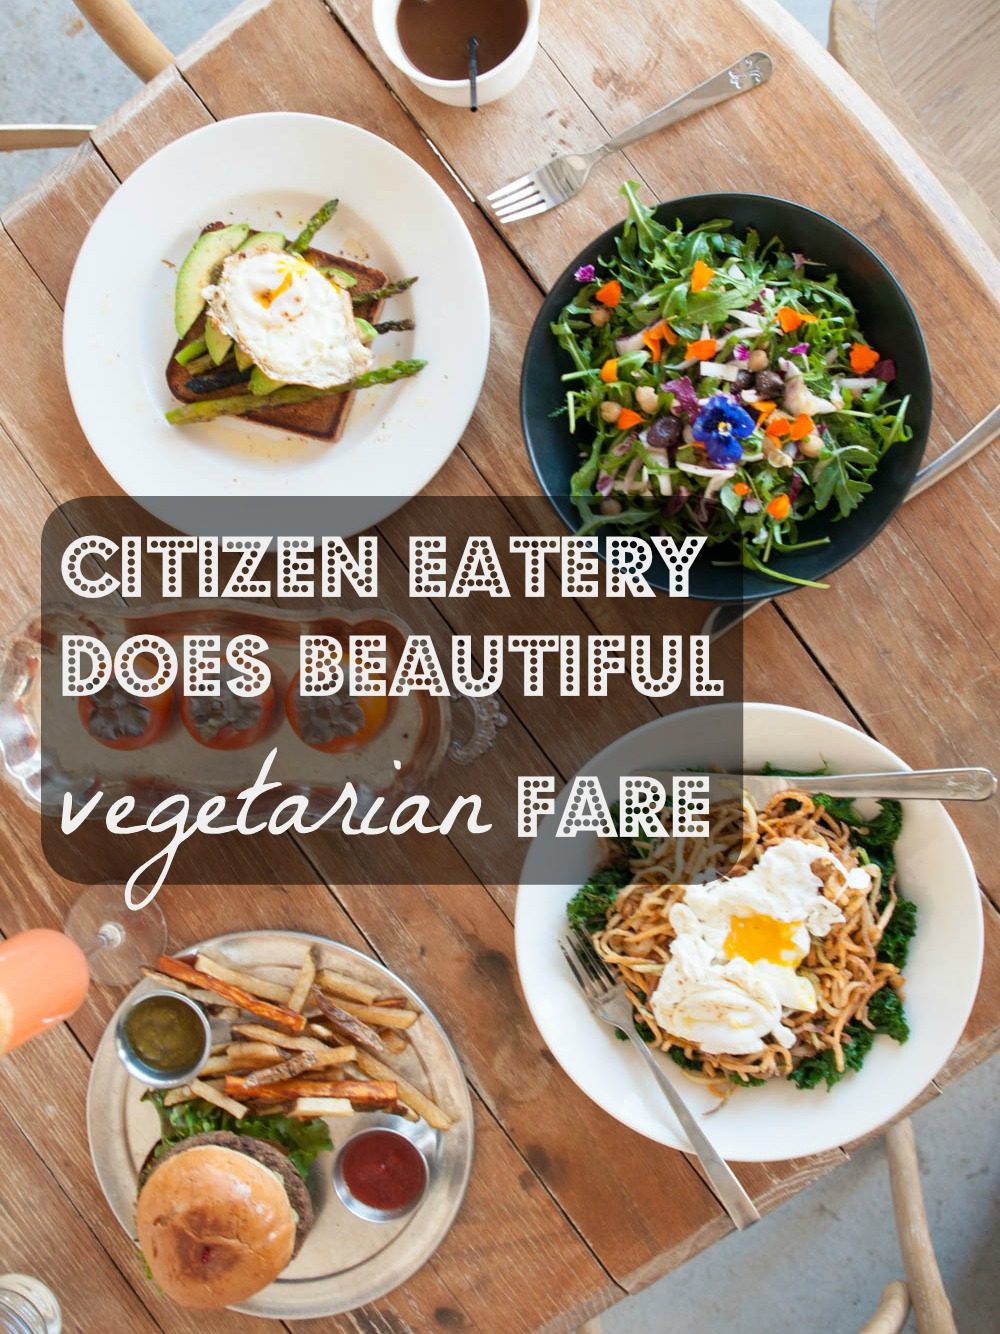 Citizen Eatery in Austin